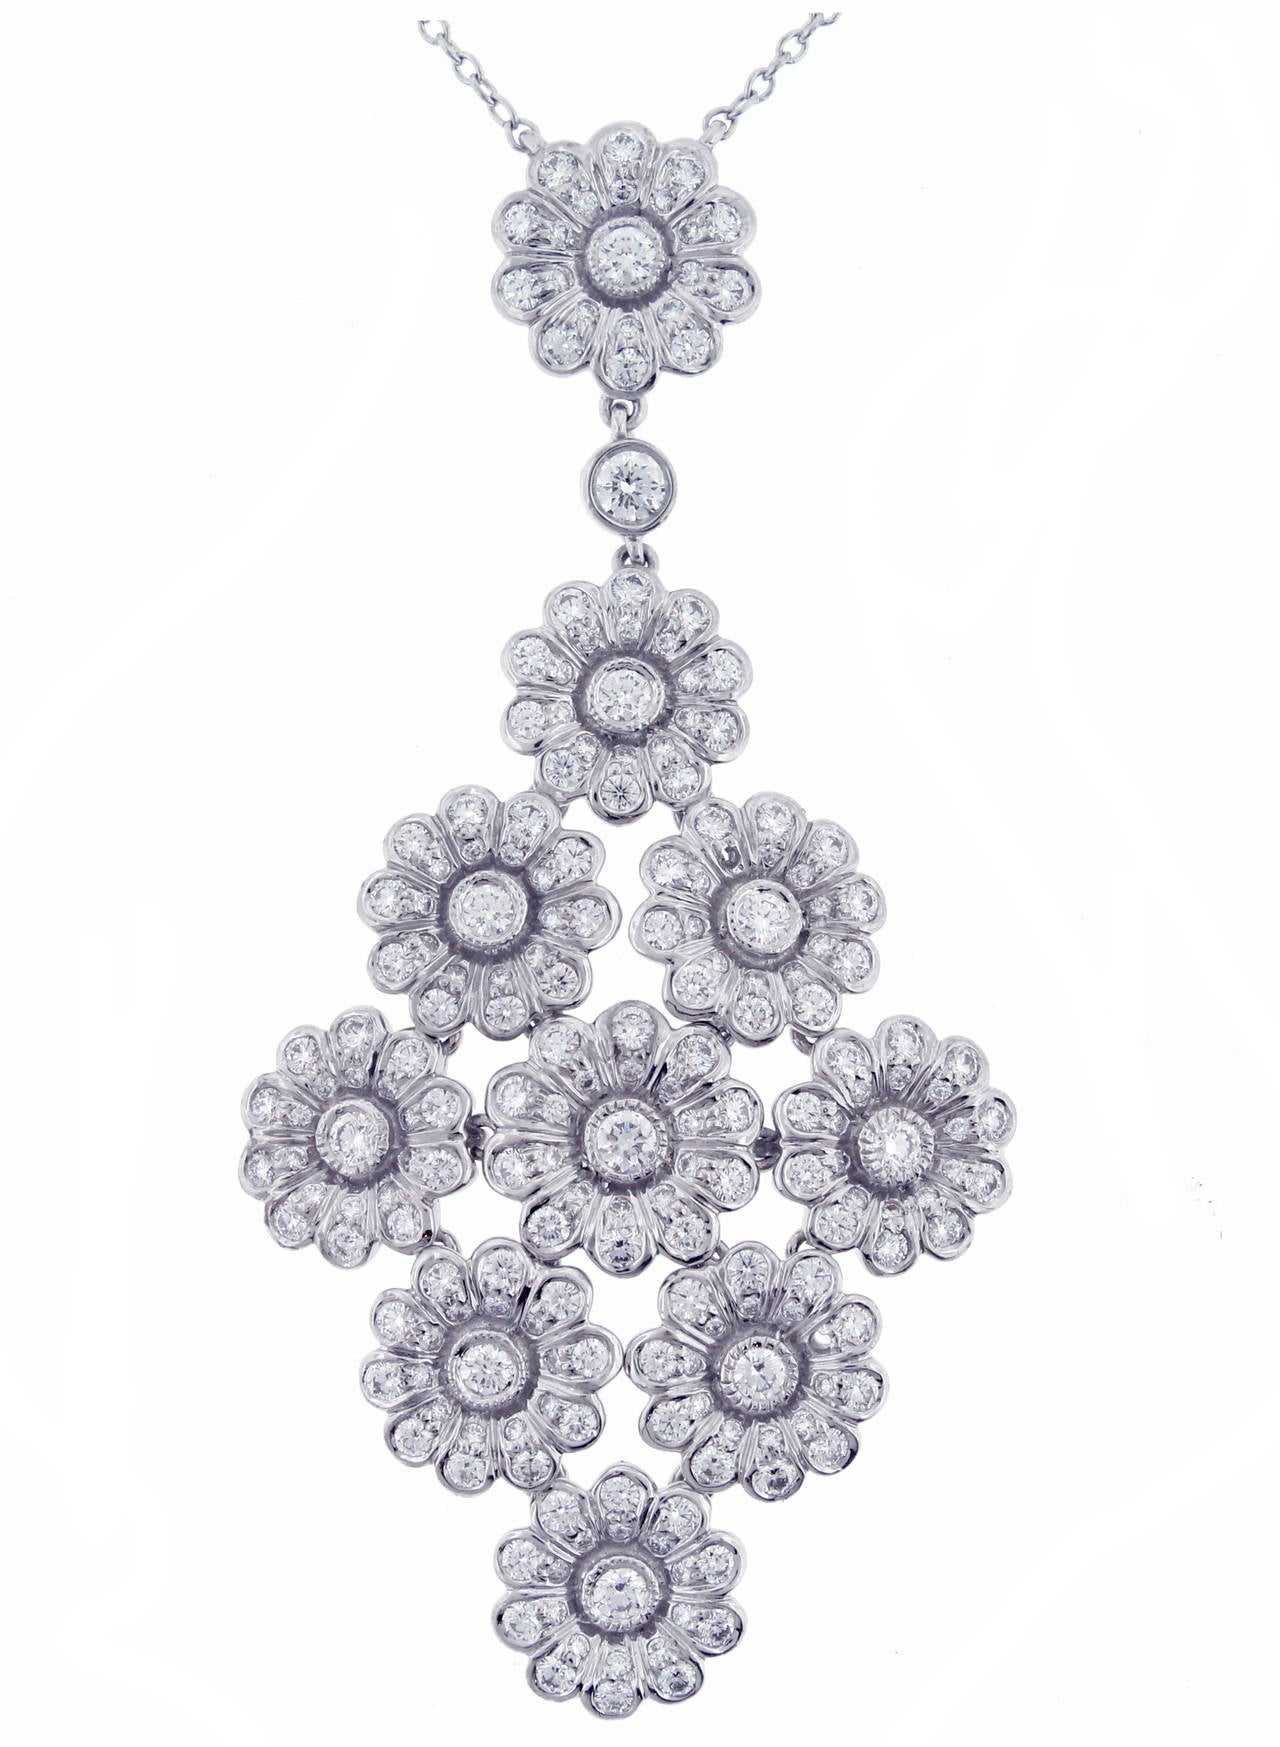 This platinum diamond drop necklace is comprised of a nine flower motif drop on a diamond necklace. Each rose motif is individually hinged for flexibility. Set with 219 shimmering diamonds weighing approximately 2.1 carats, F-G color and VVS